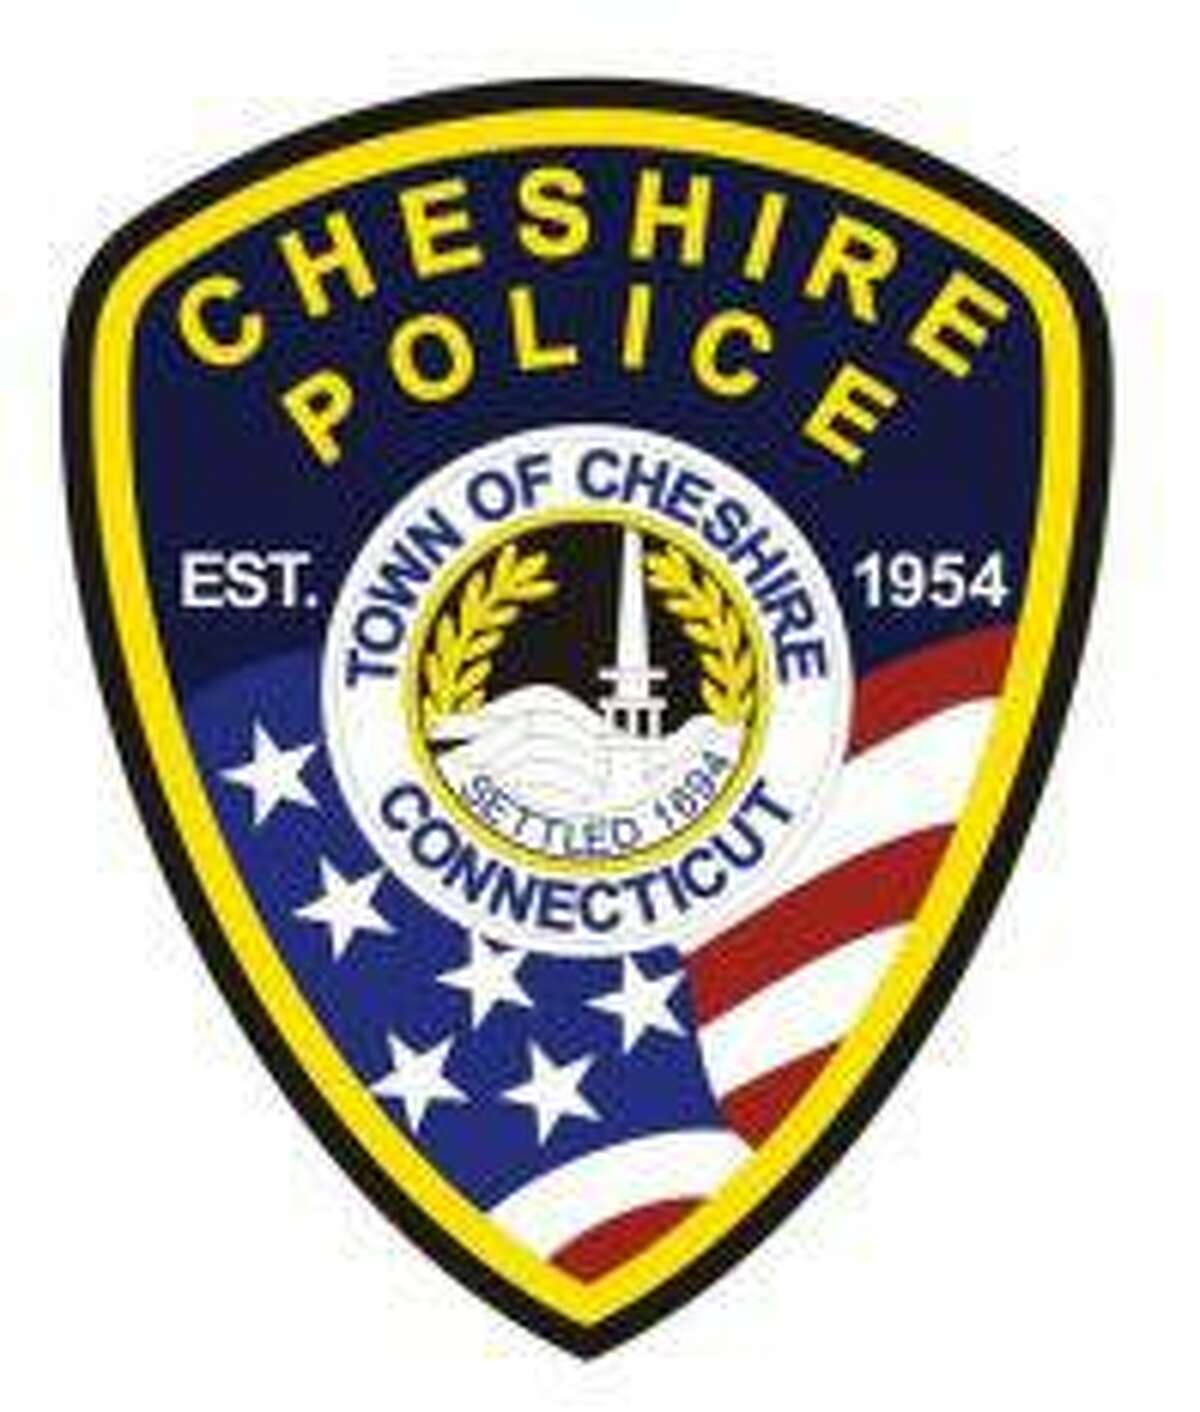 The logo of the Cheshire Police Department.